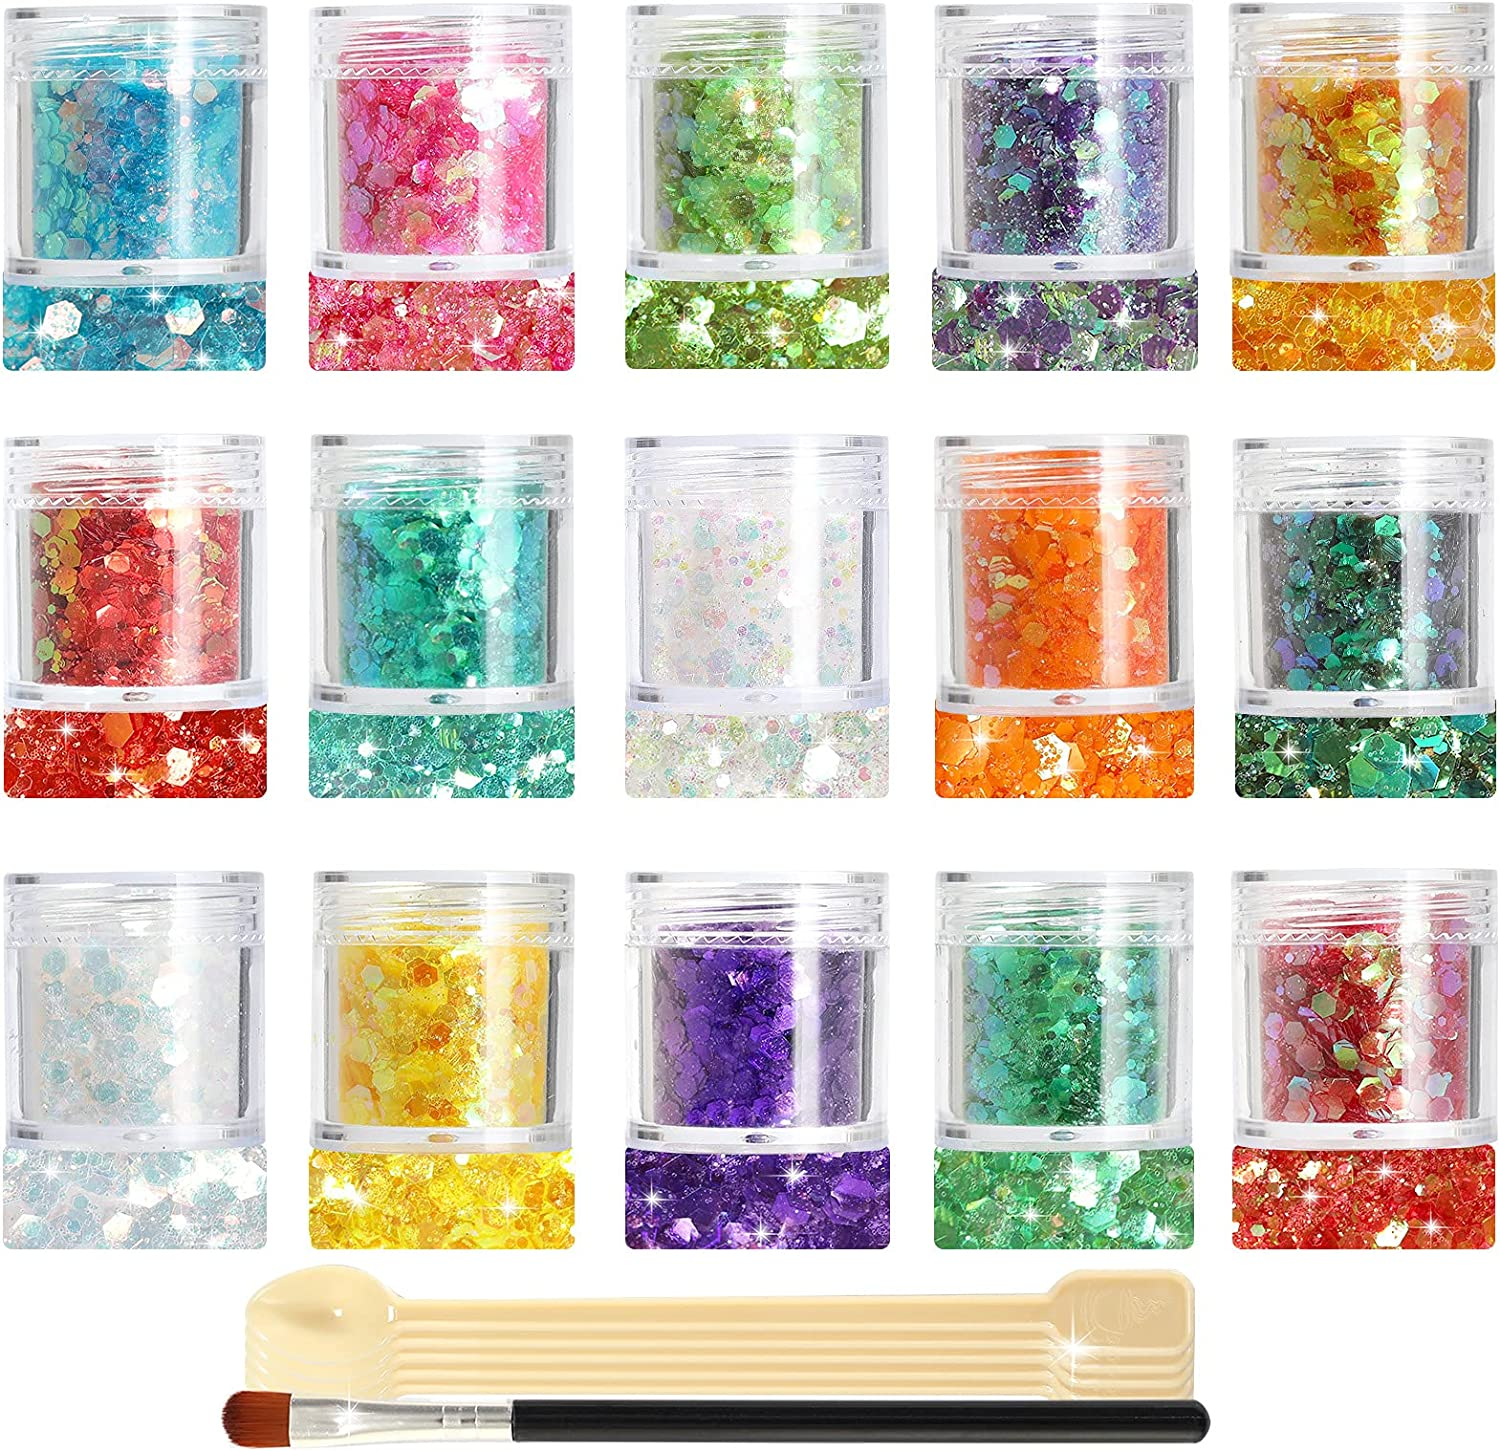 Glitter SUPGIFT 15 Colors 280g Holographic Chunky Cosmetic Rainbow Colorful Sequins for Makeup Body Hair Nail Art Slime Craft Resin with Brush 5 Spoons : Everything Else